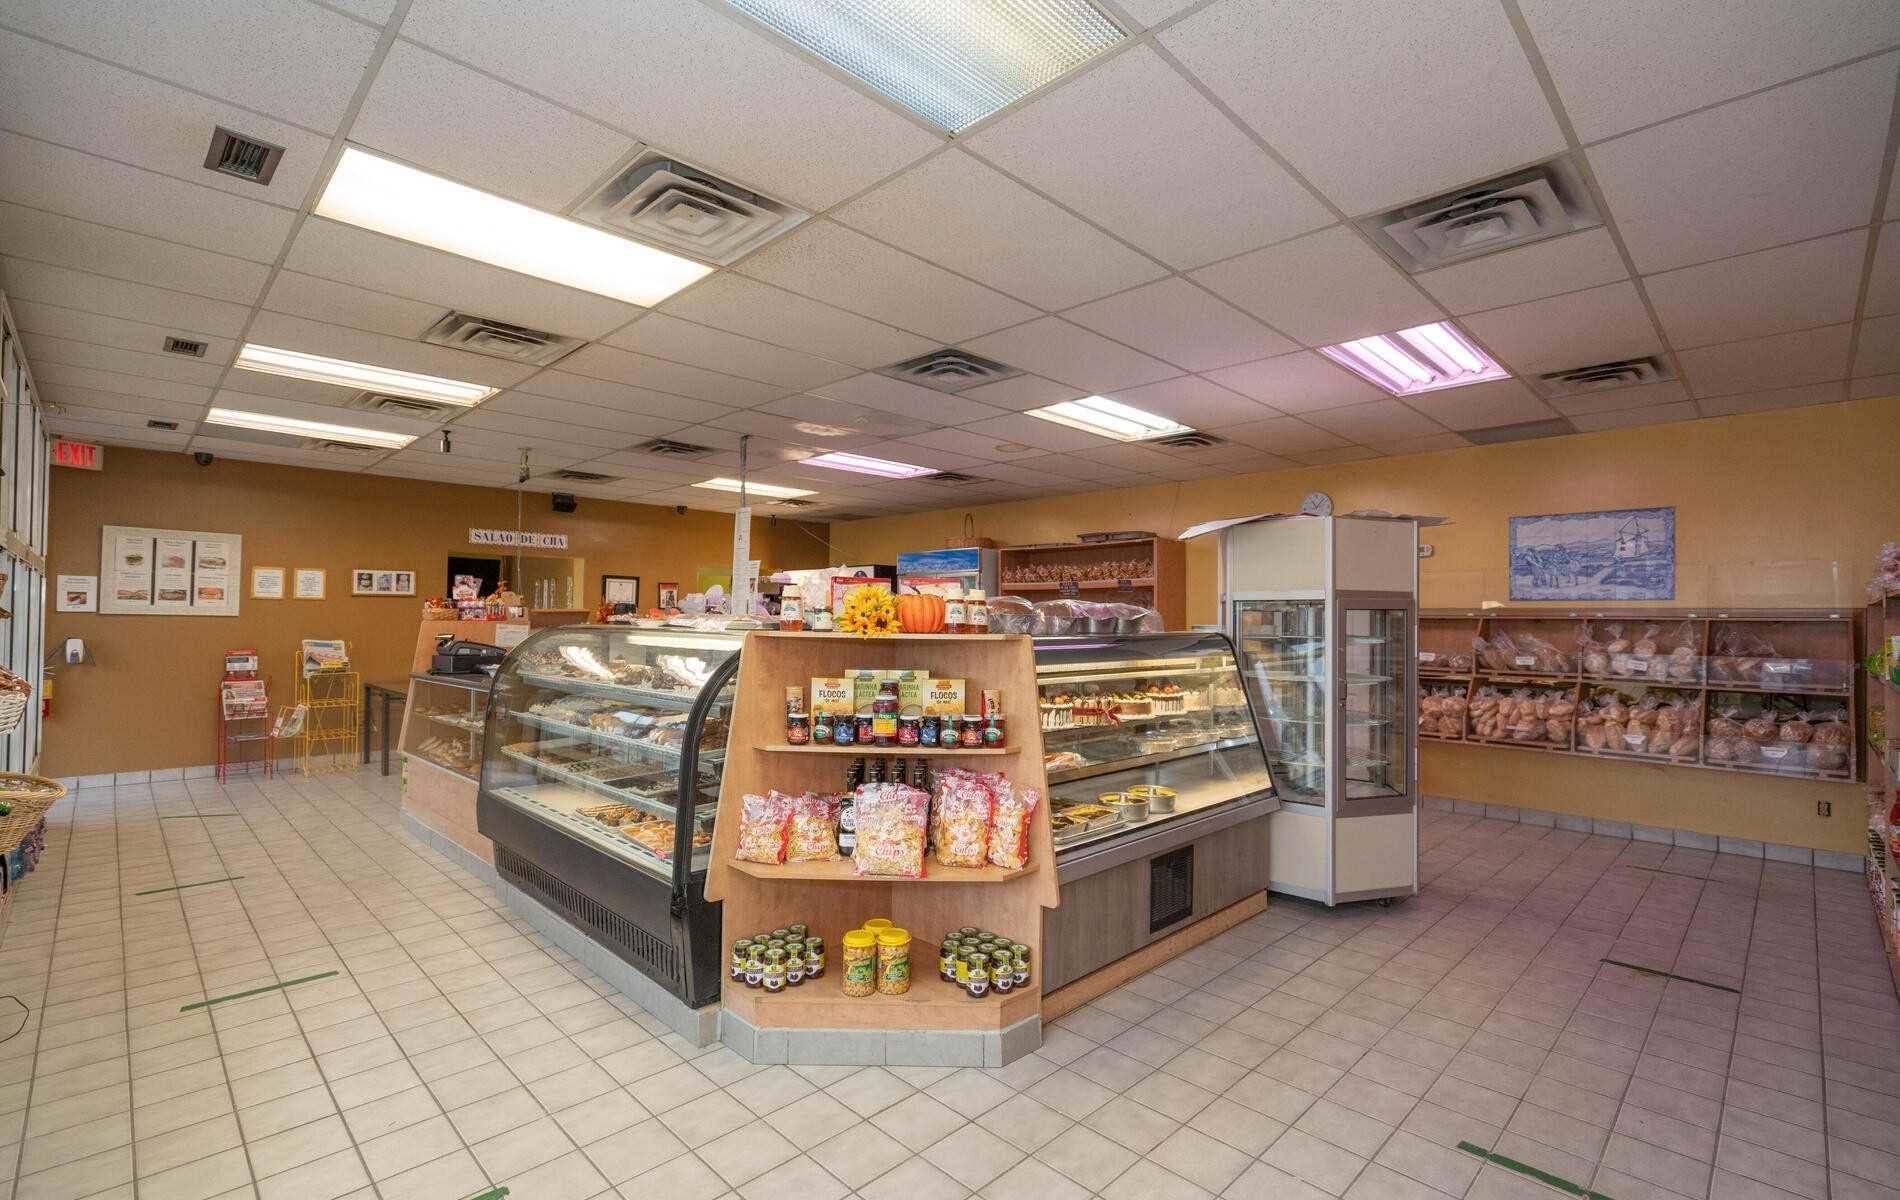 4 Mclaughlin Rd S in Brampton - Commercial For Sale : MLS# w5140894 Photo 8